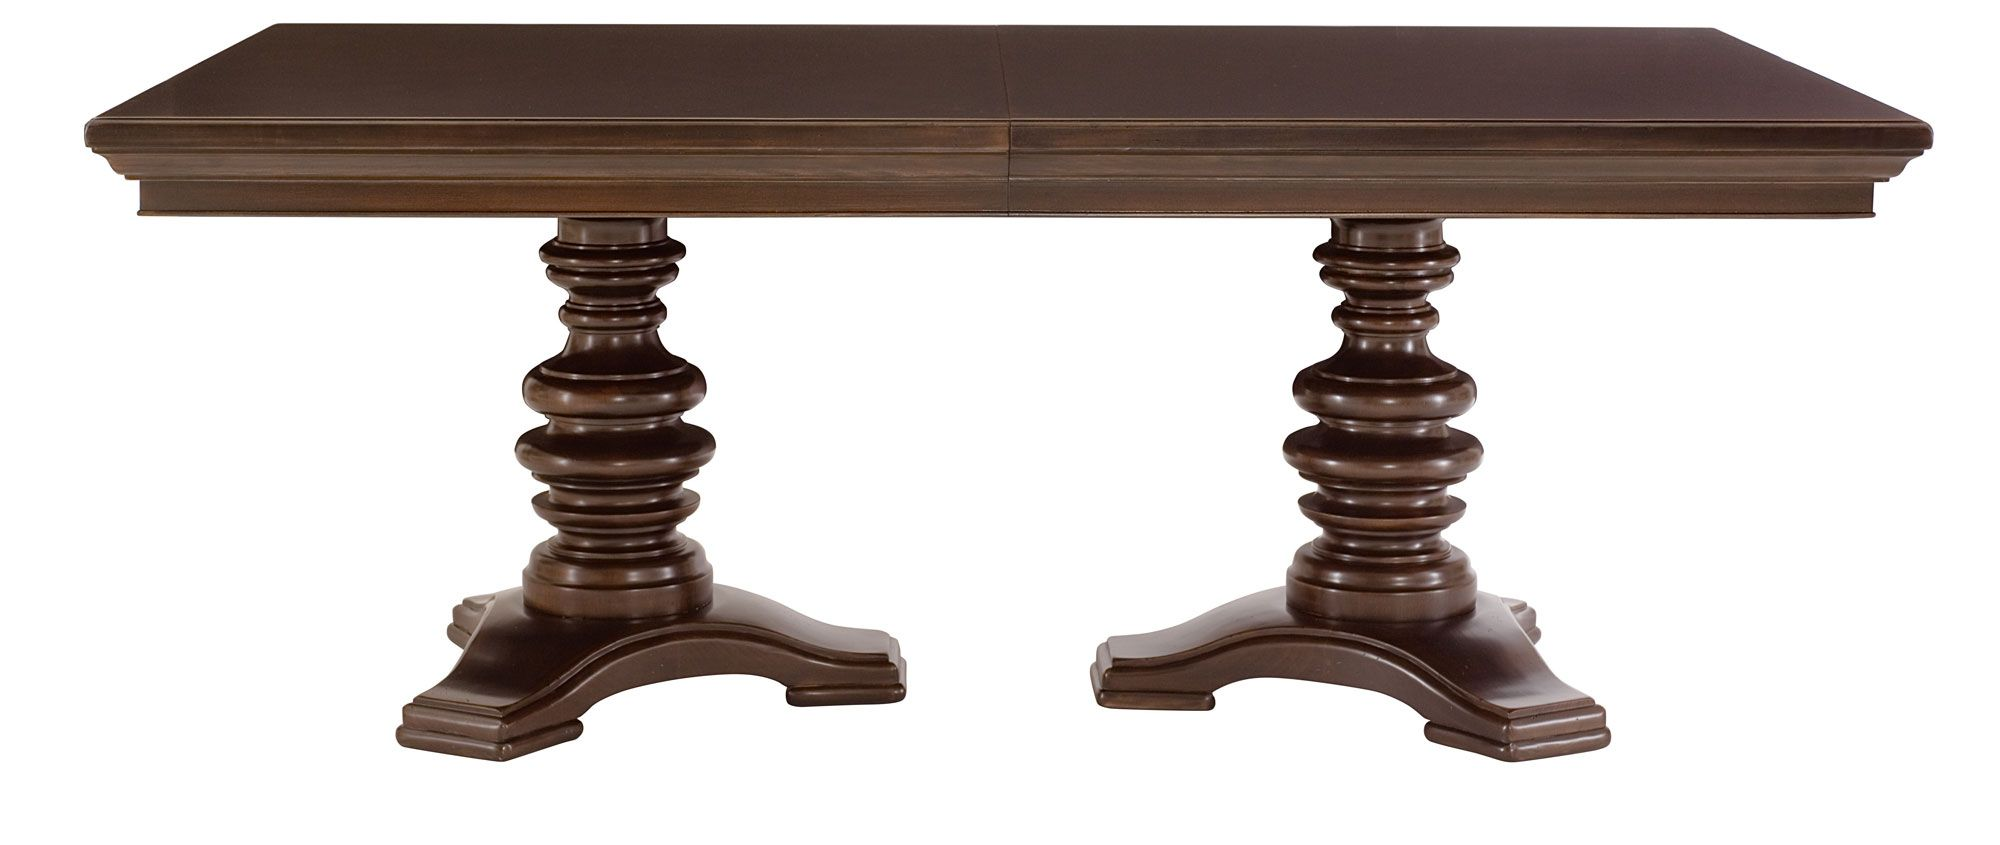 Dining Table Top And Double Pedestal Dining Table Base Bernhardt